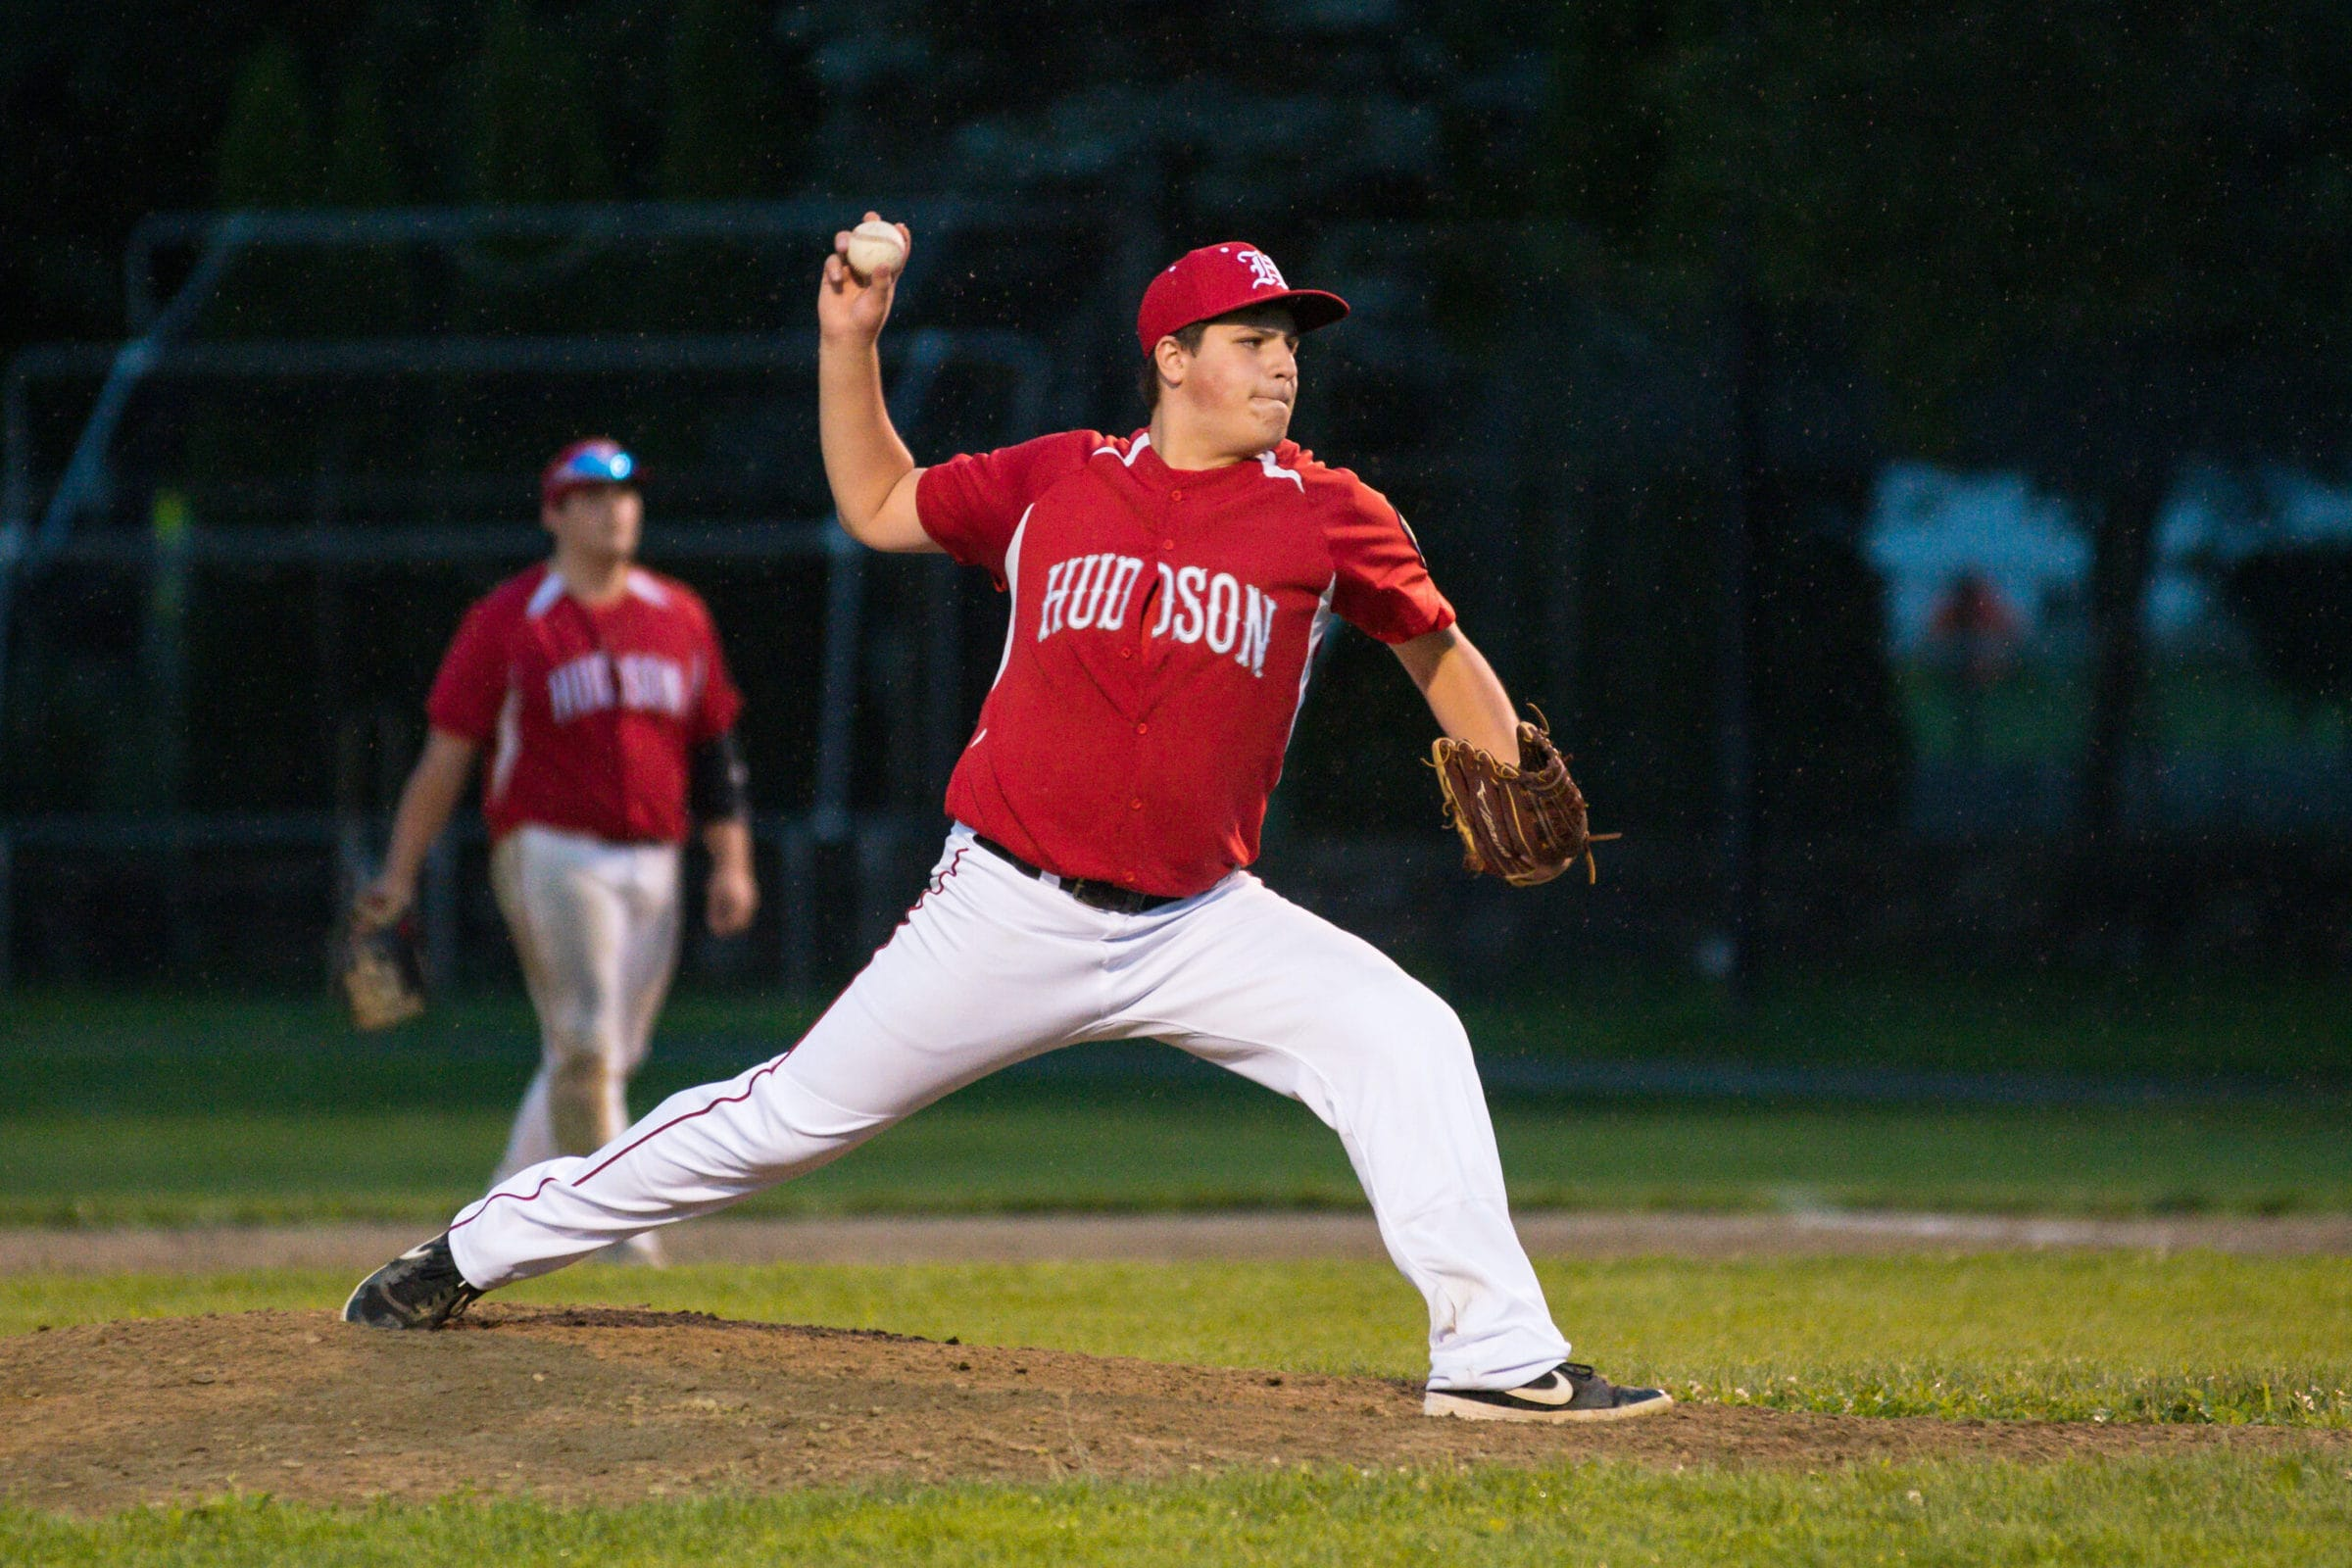 Hudson pitcher Justin Wolfe throws a pitch to an Ashland batter.